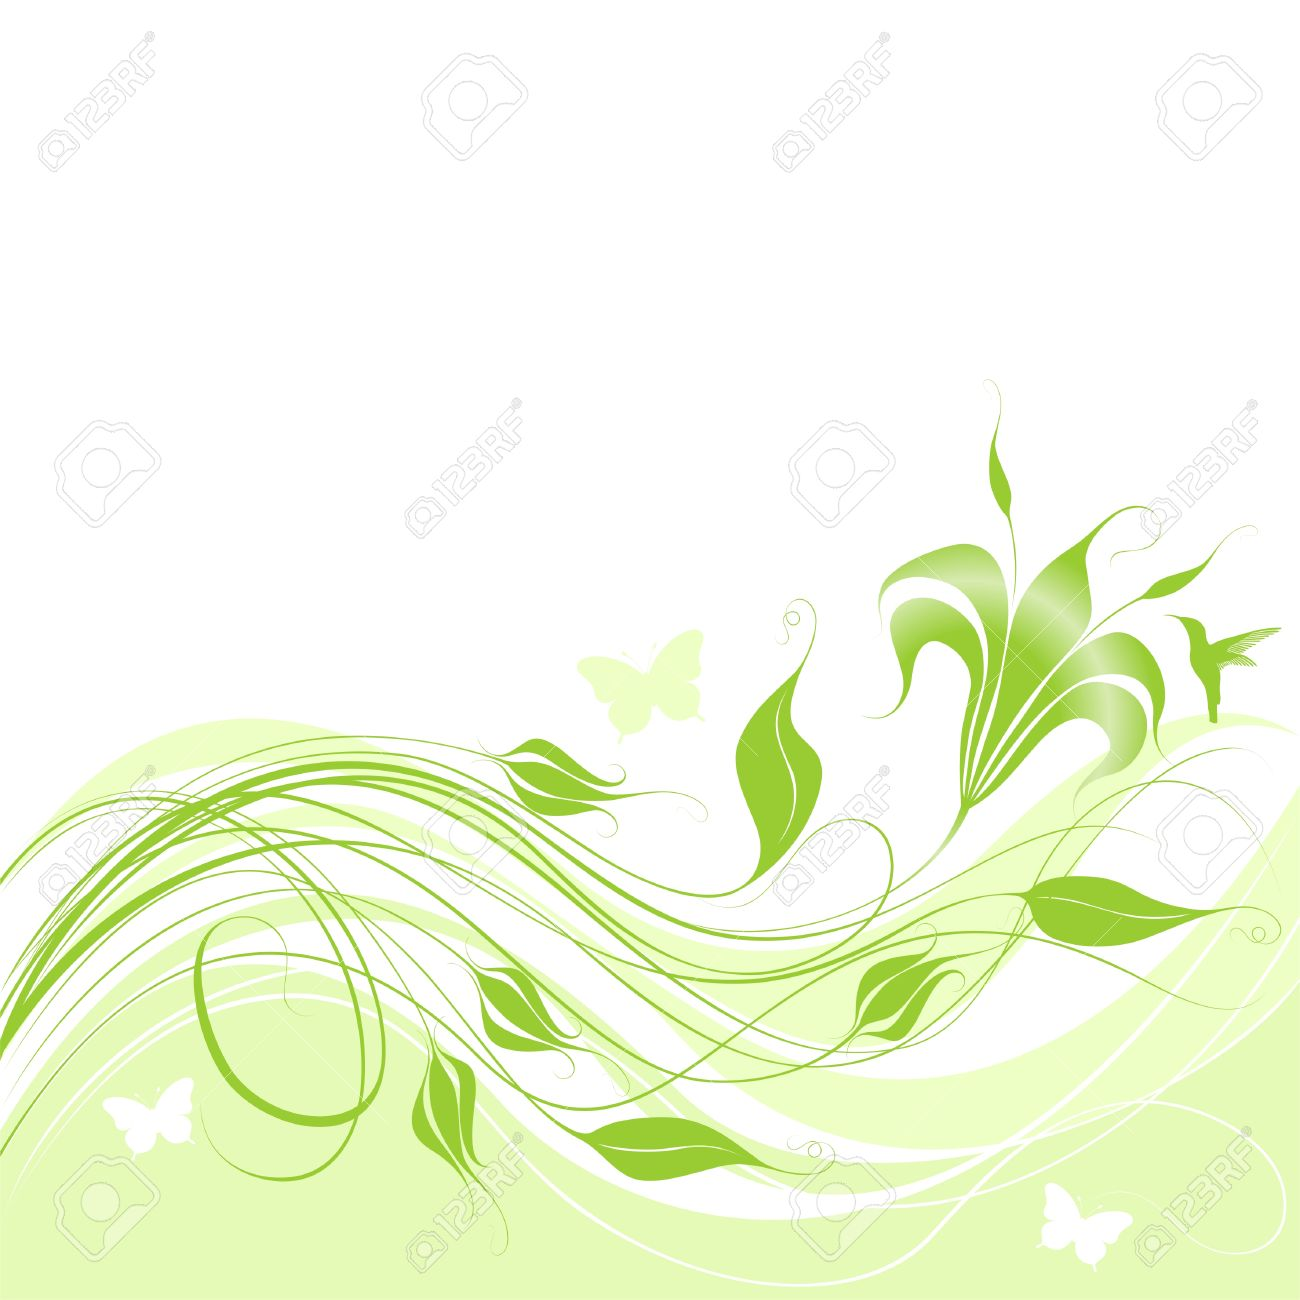 abstract background with green flower elements royalty free cliparts vectors and stock illustration image 6176194 123rf com